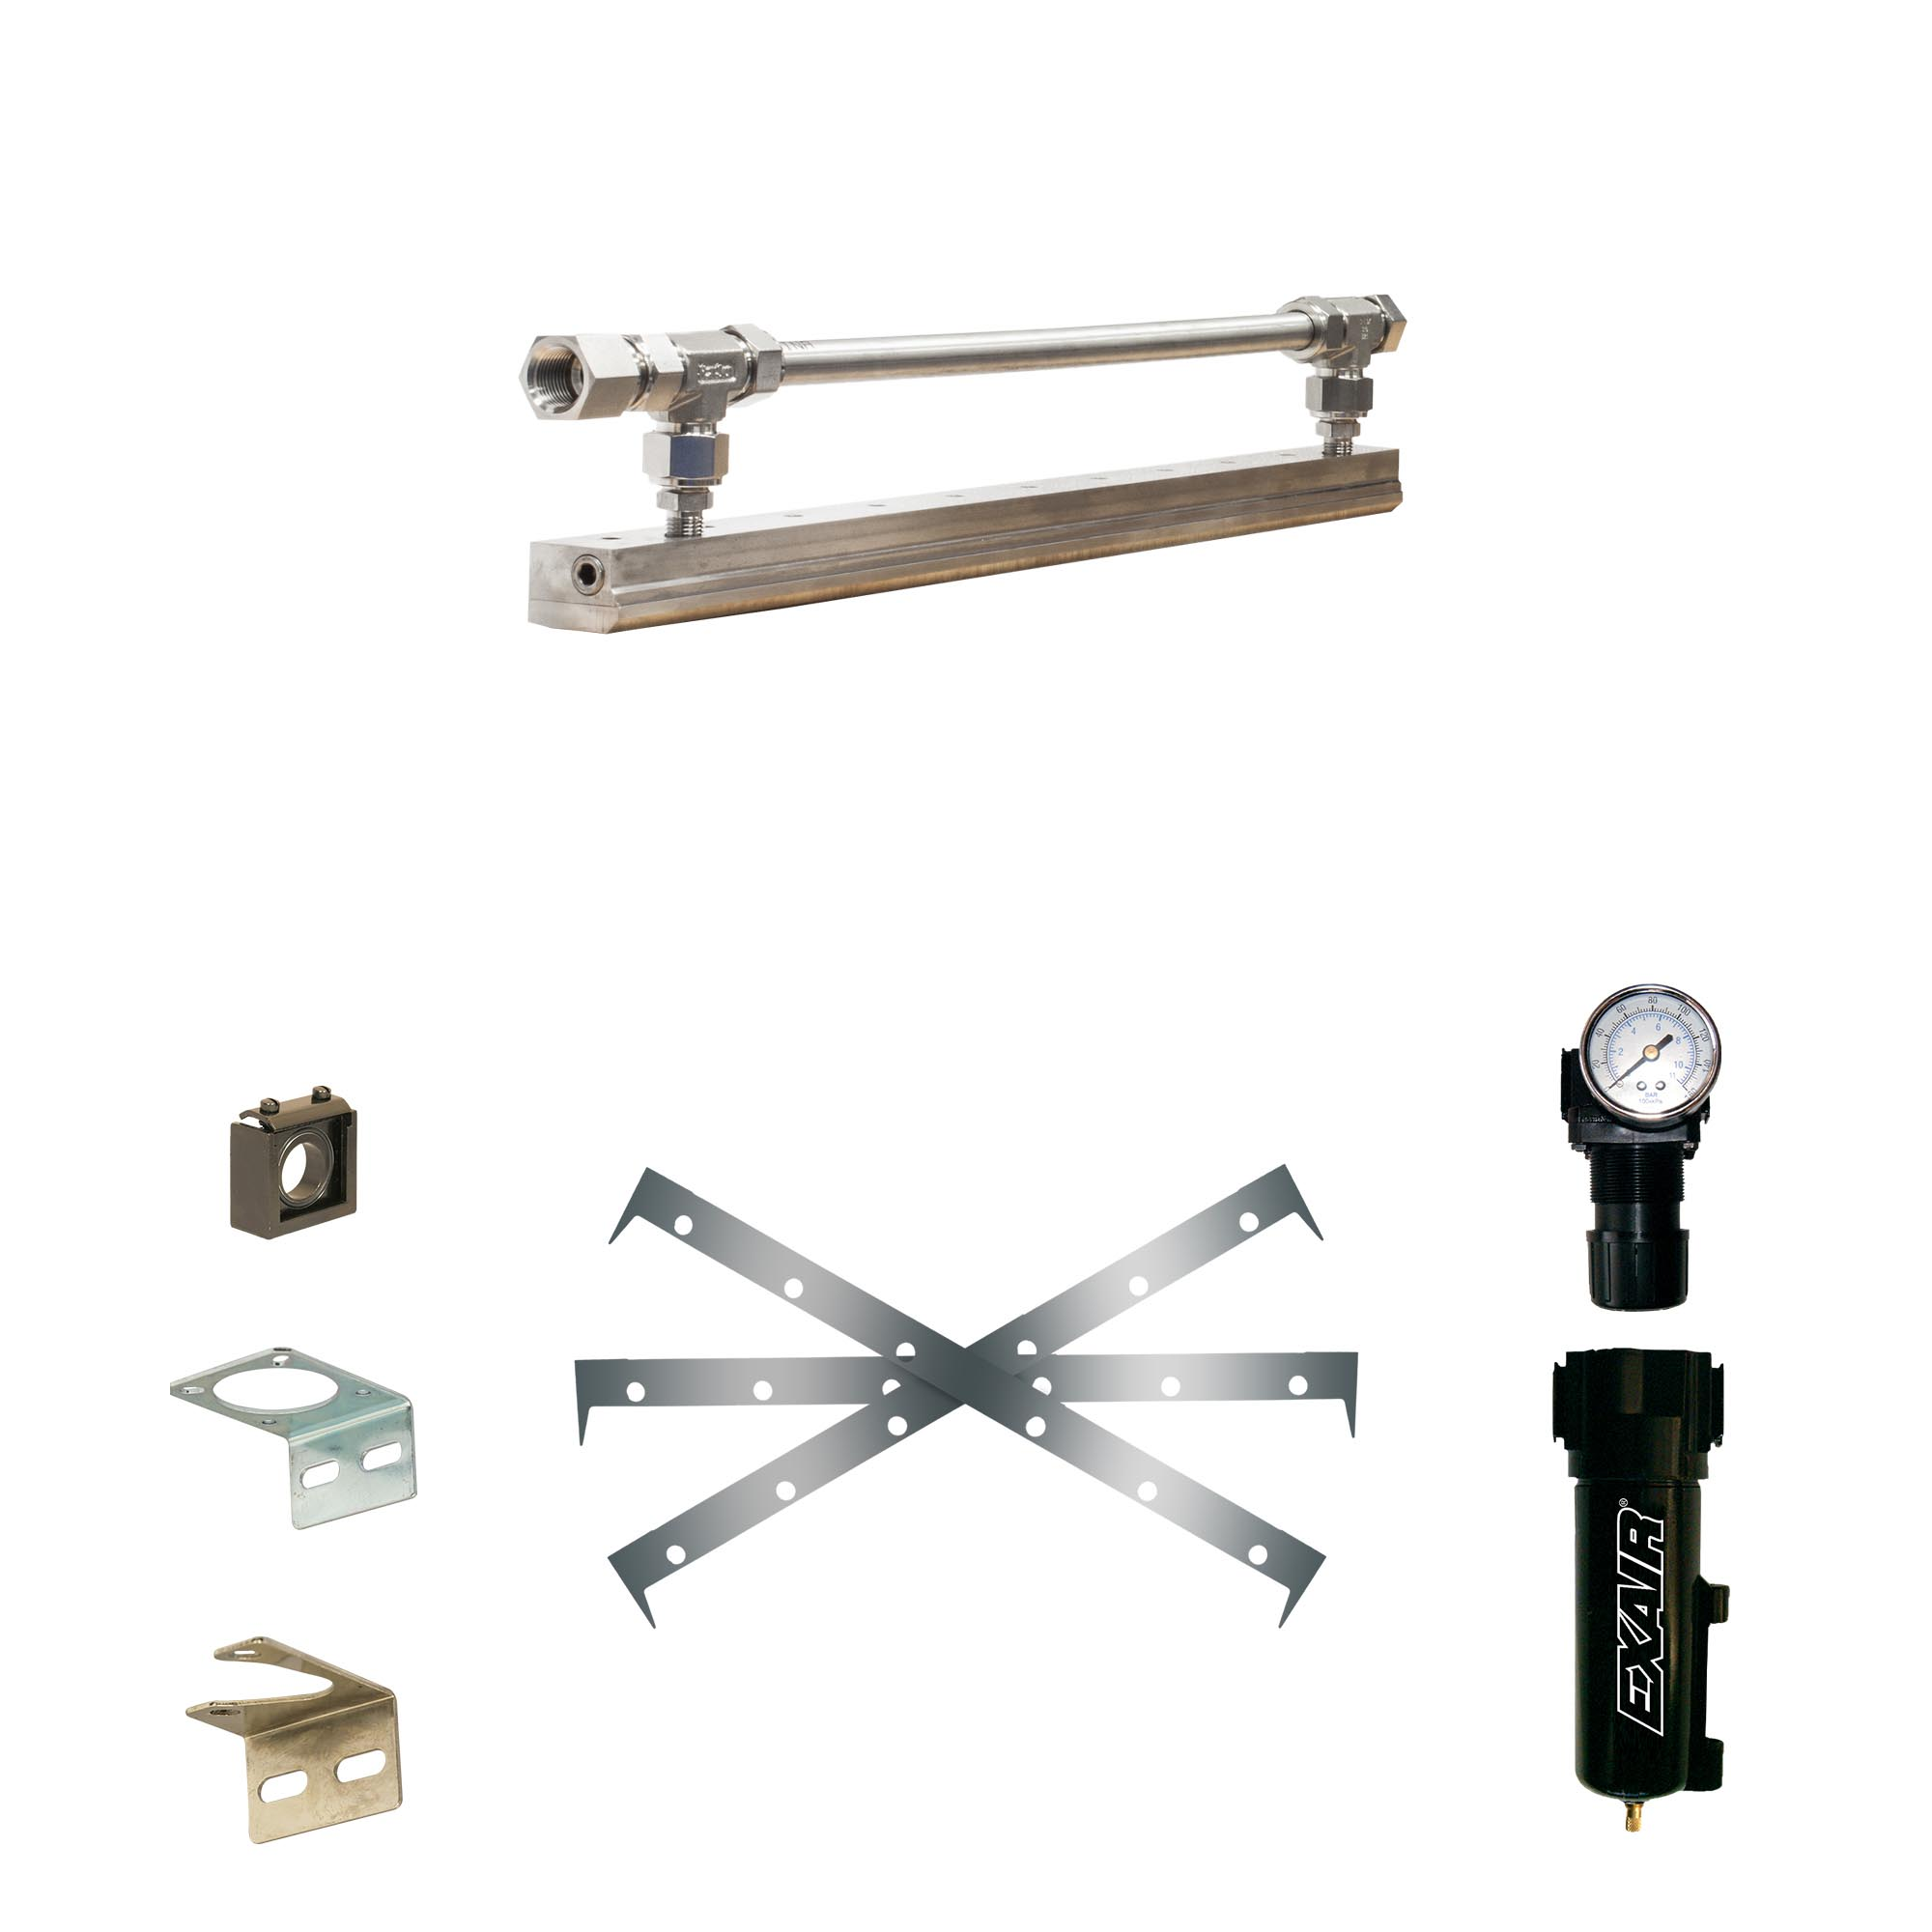 Stainless Steel Super Air Knife Kit with Plumbing Kit installed